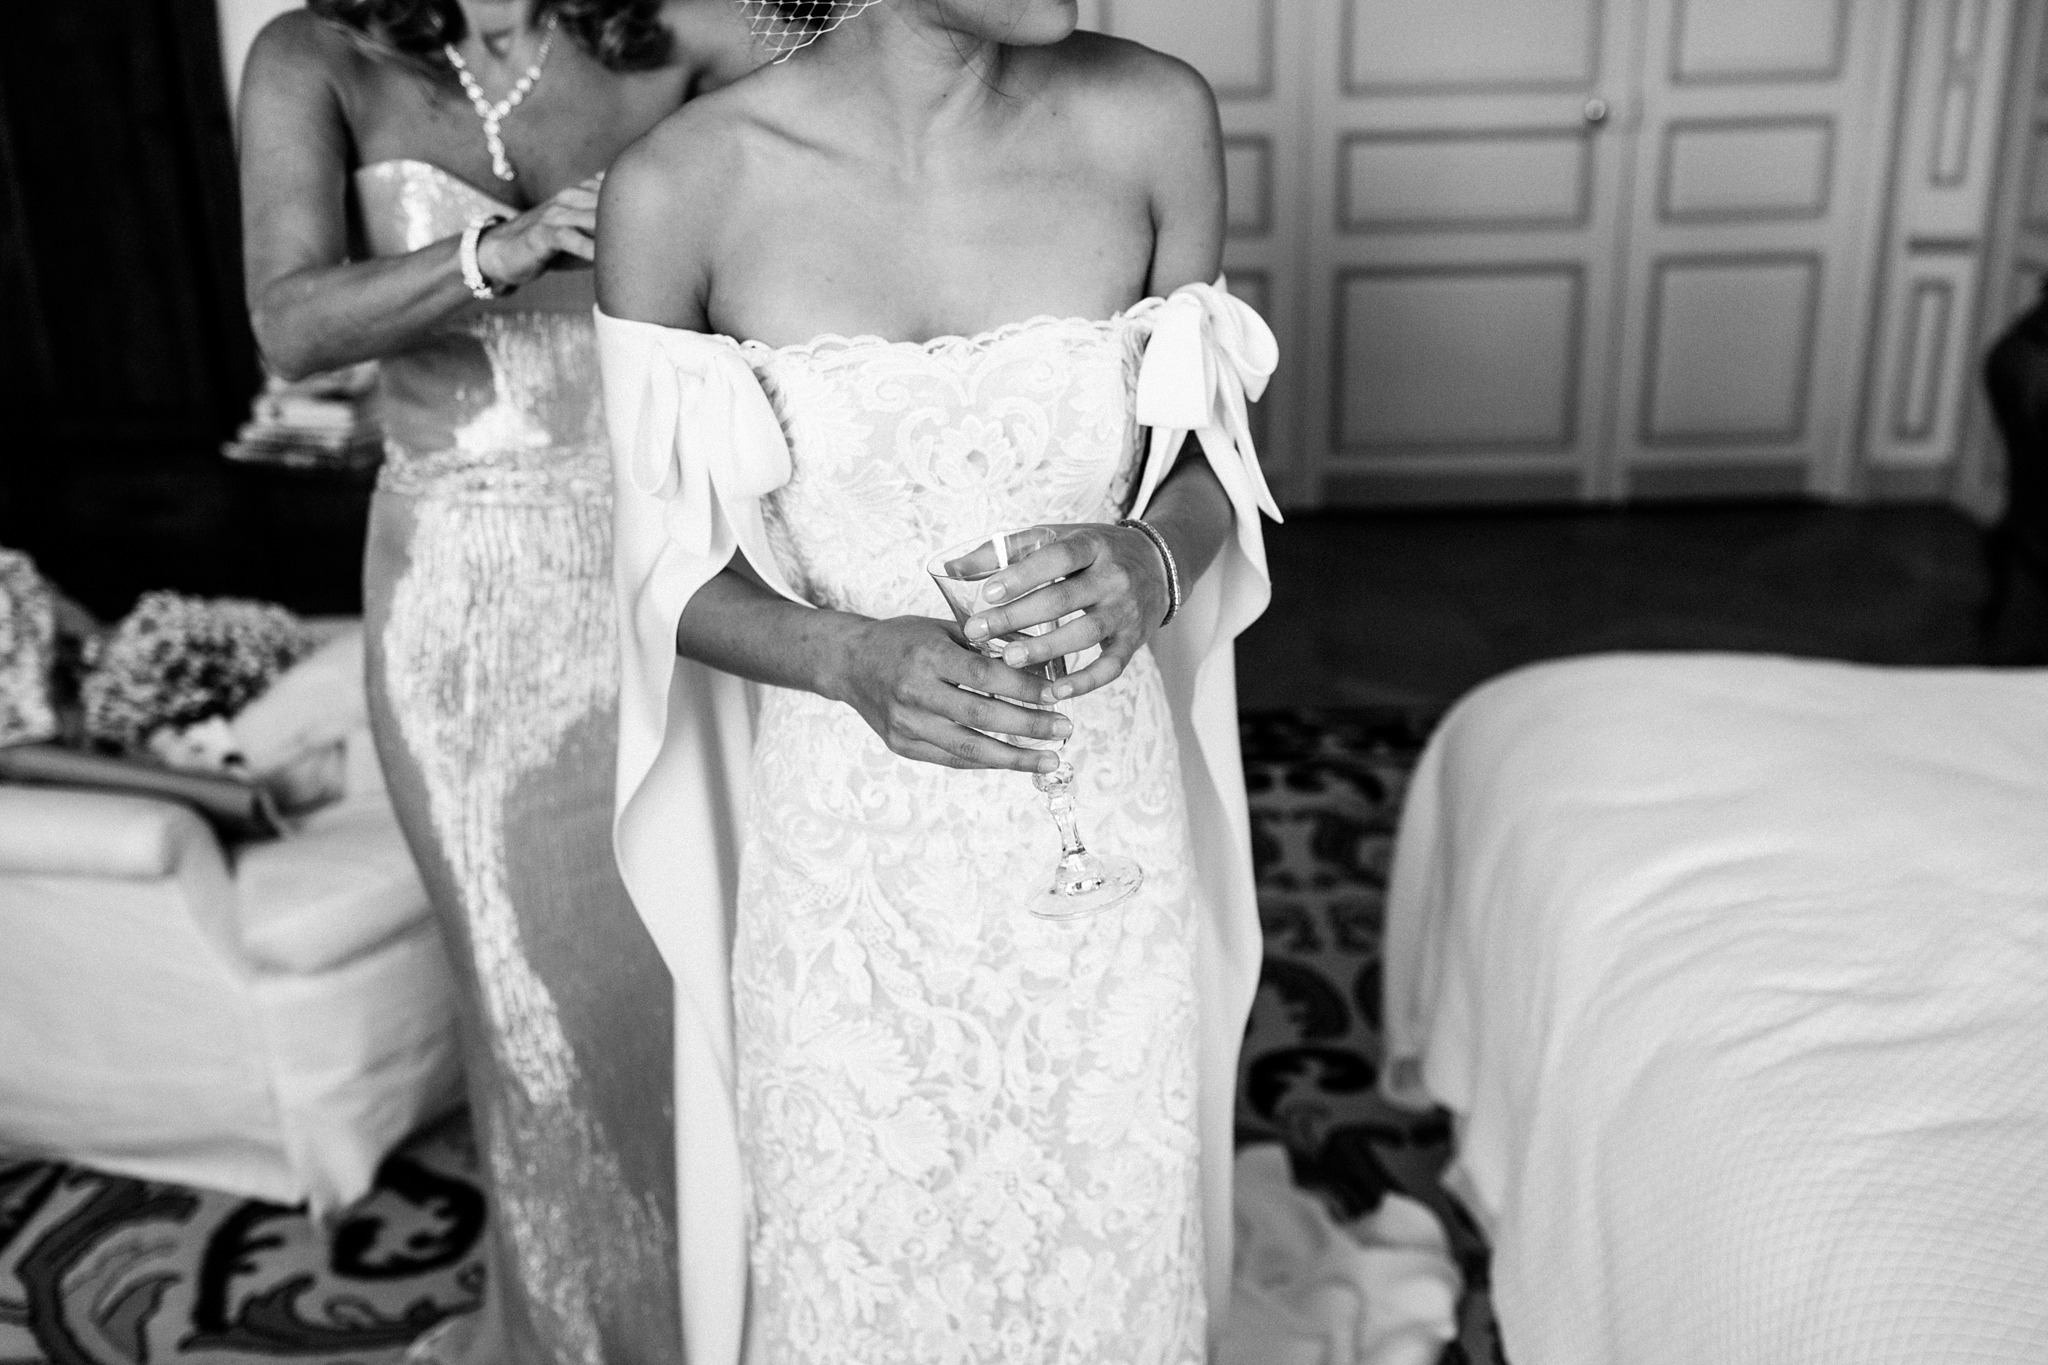 chateau-wedding-france-chanel-eric-as-seen-on-vogue-with-sarah-falugo-photographer_0101